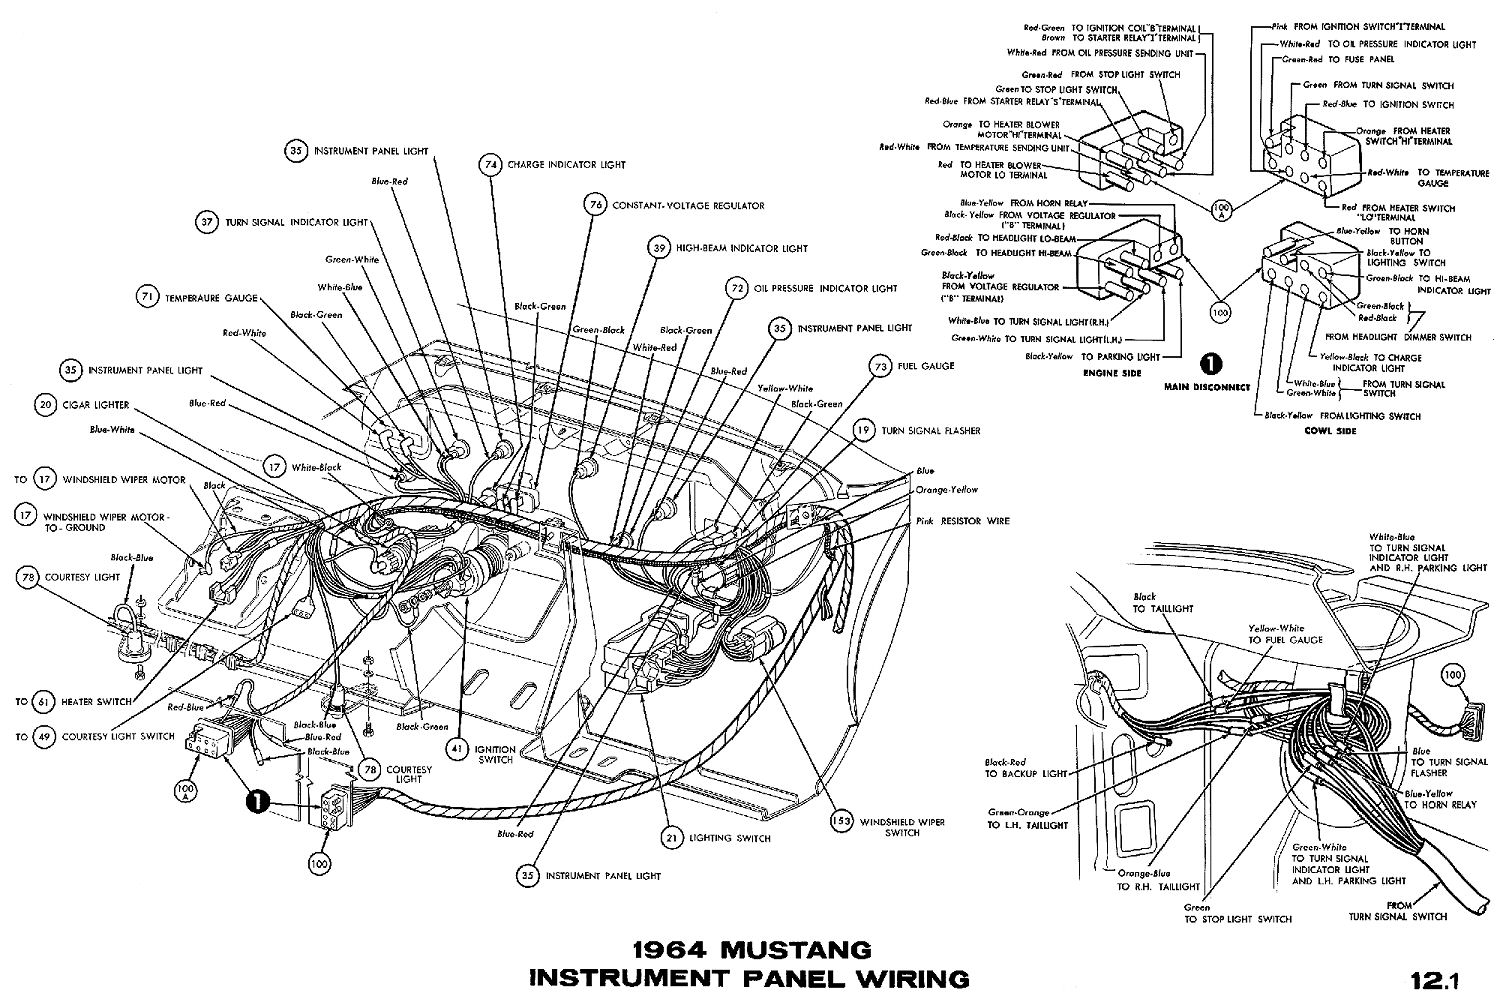 1964 Mustang Wiring Diagrams Average Joe Restoration 1967 Chevy C10 Fuse Box Diagram Schematic Instrument Cluster Connections